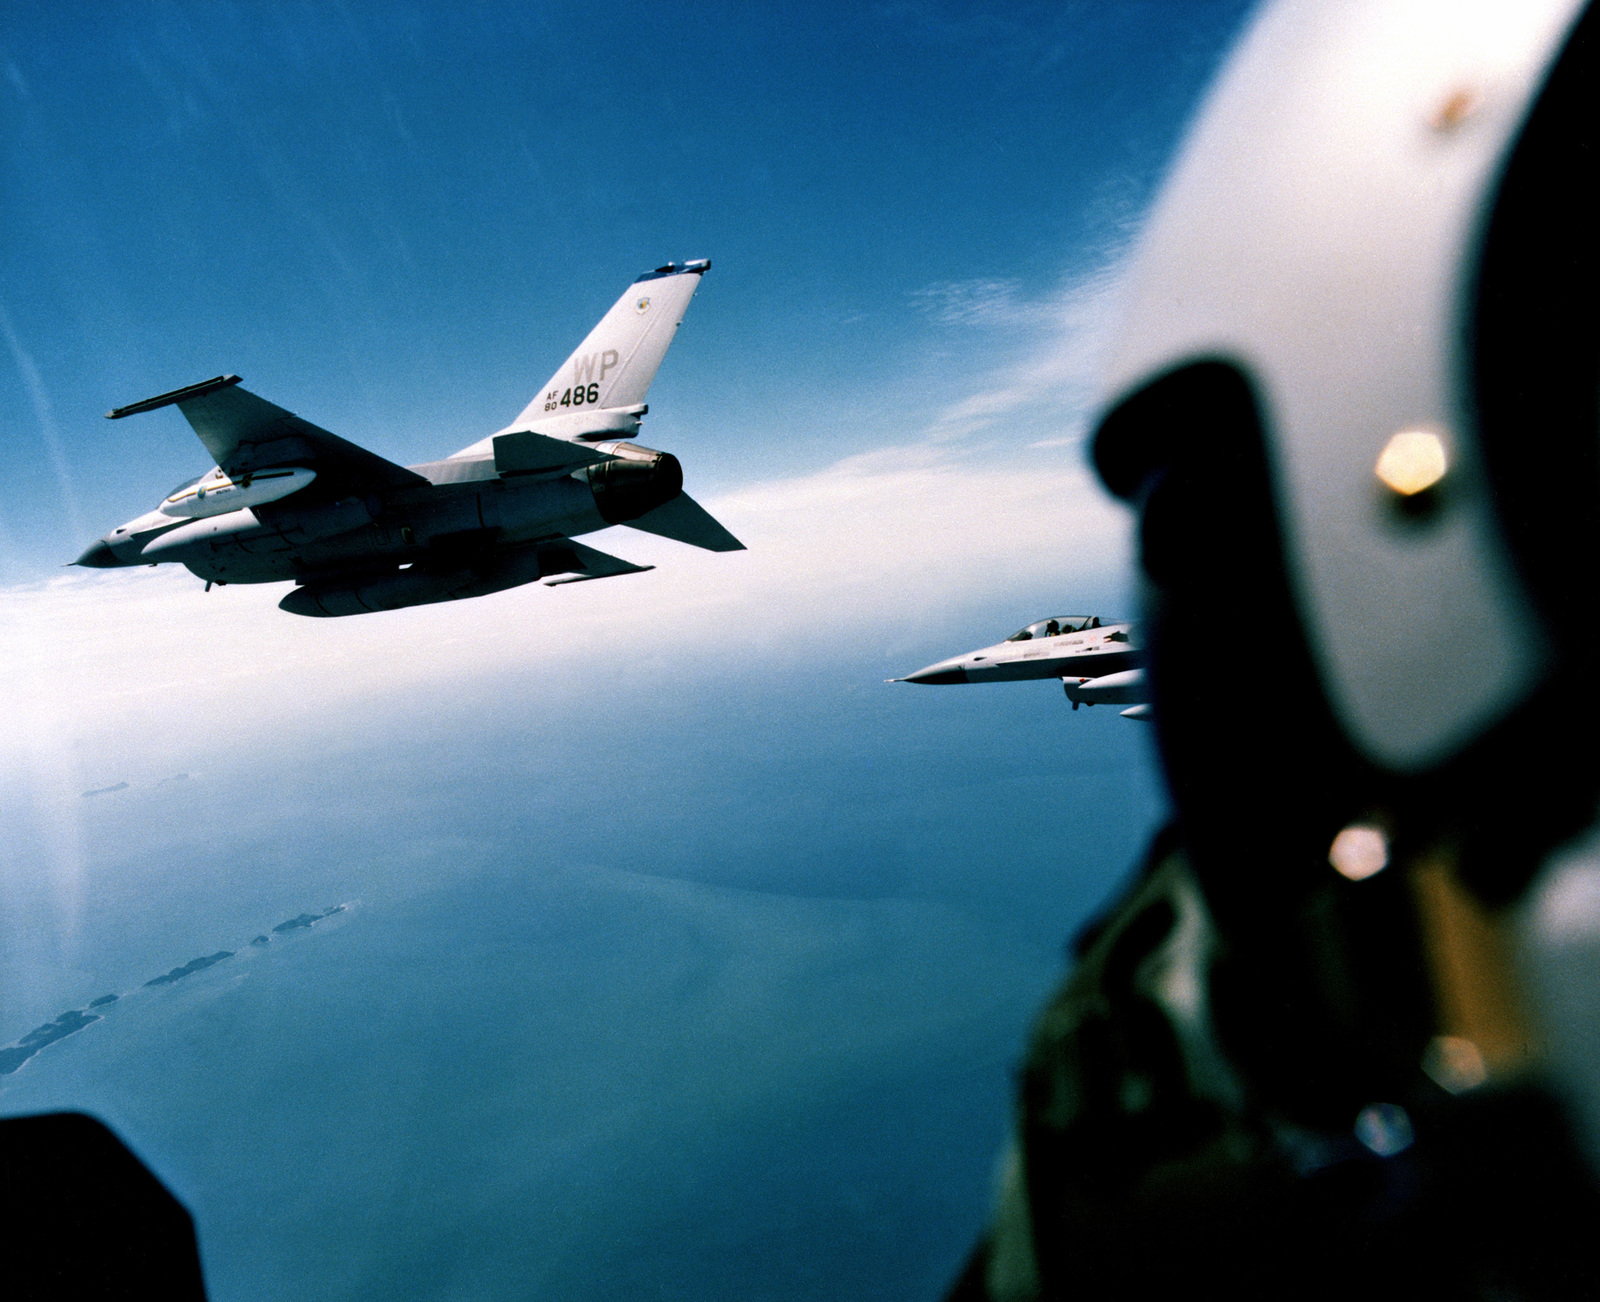 A left side view of two F-16A Fighting Falcon aircraft, seen from inside another Falcon's canopy, in flight. The aircraft are from the 35th Tactical Fighter Squadron, 8th Tactical Fighter Wing, being deployed to Kunsan Air Base, Korea. The leading aircraft is shown equipped with a luggage pod on the left wing and auxiliary fuel tanks